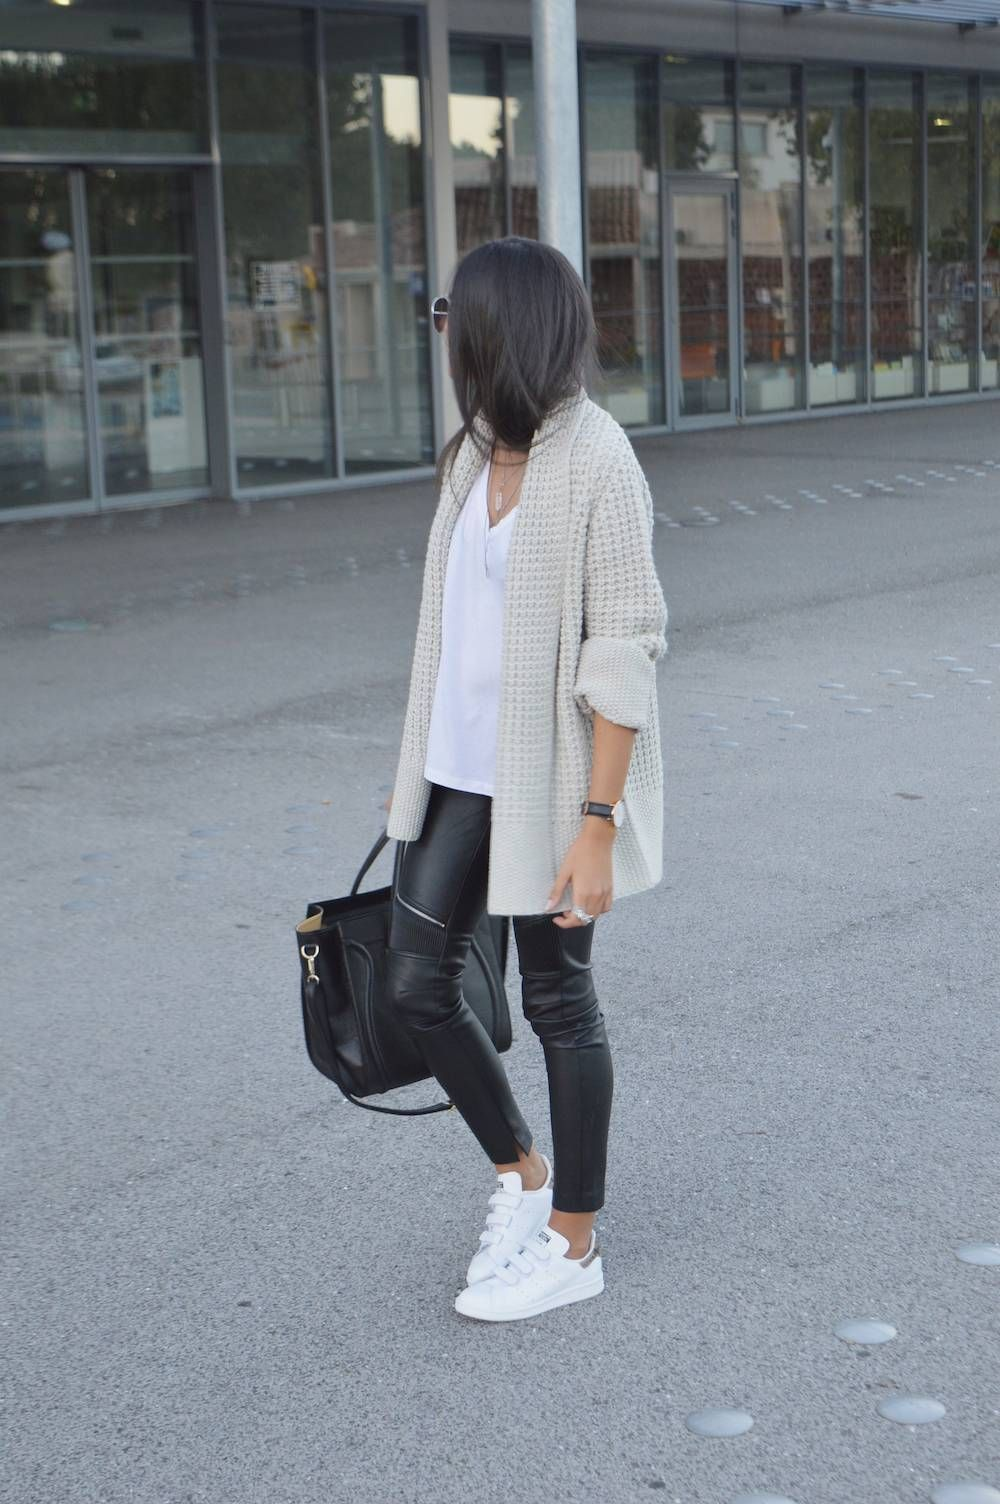 a4be6a4c3fc Shop the look from Miszkiczka on ShopStyle Leather Leggings Outfit